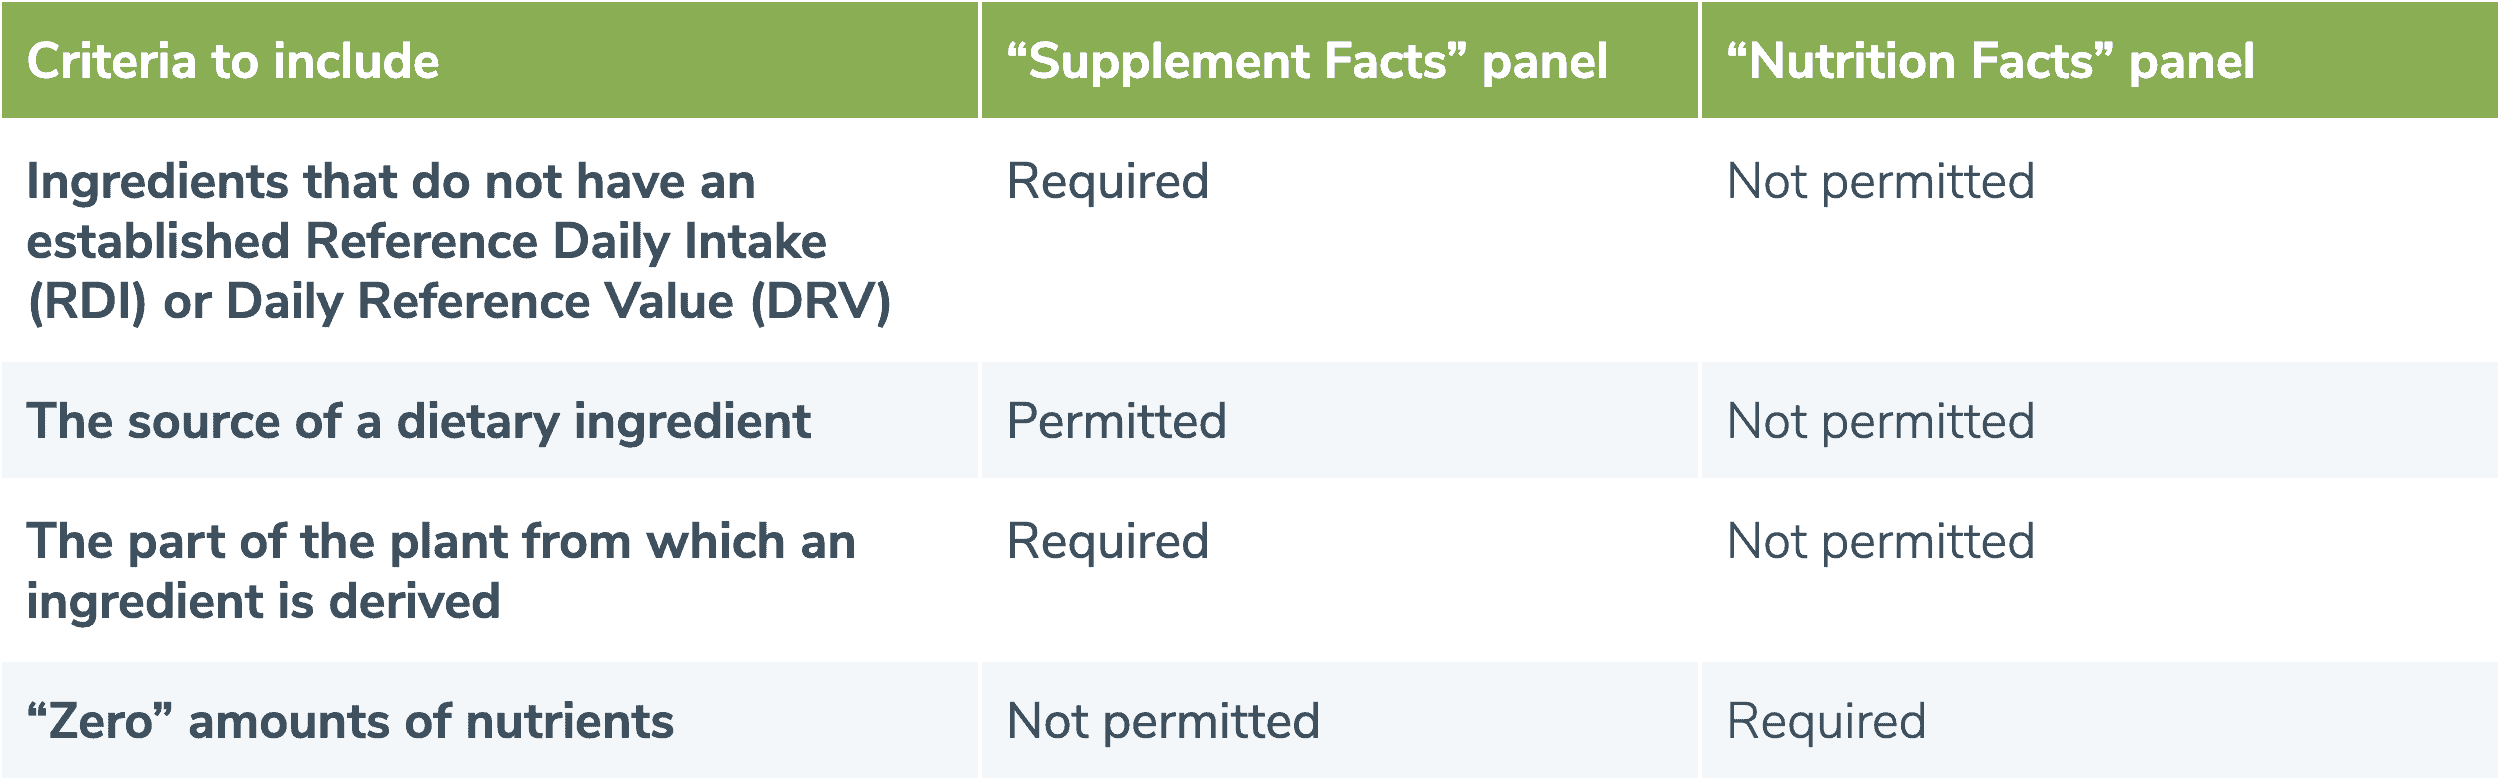 Criteria for reading dietary supplement labels